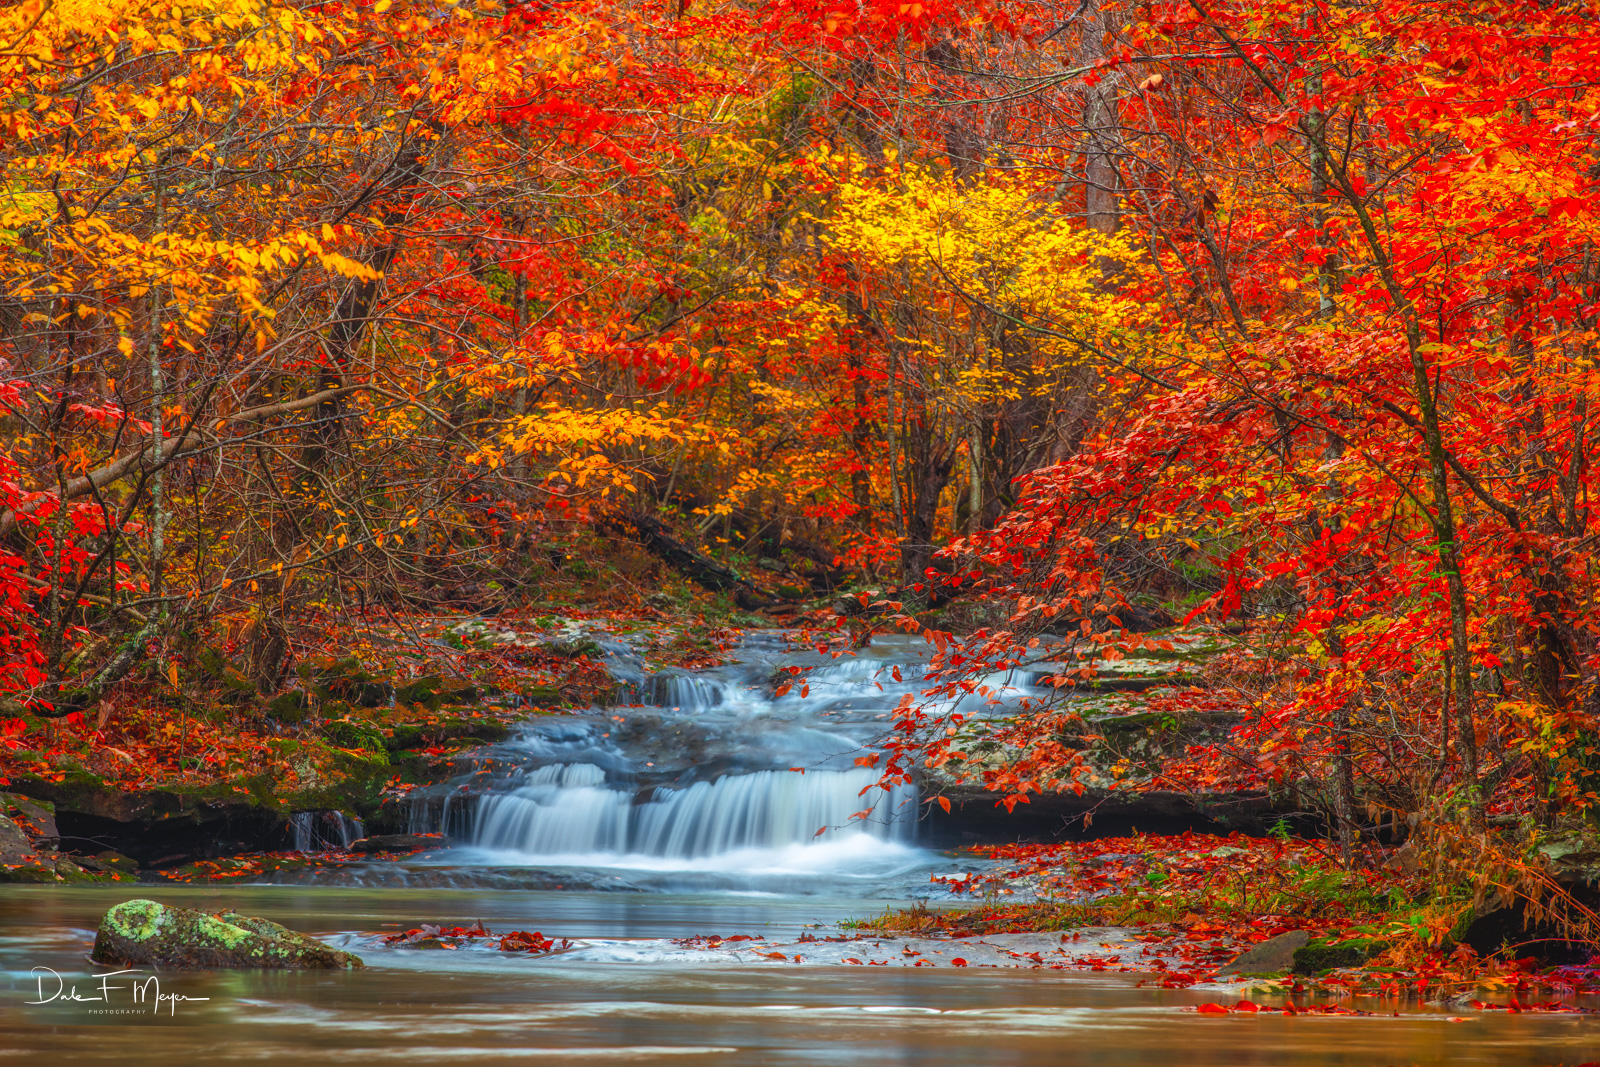 Taken on Whitaker Creek in the Upper Buffalo Wilderness Area of Arkansas, and captivated to experienceone of the most beautiful...